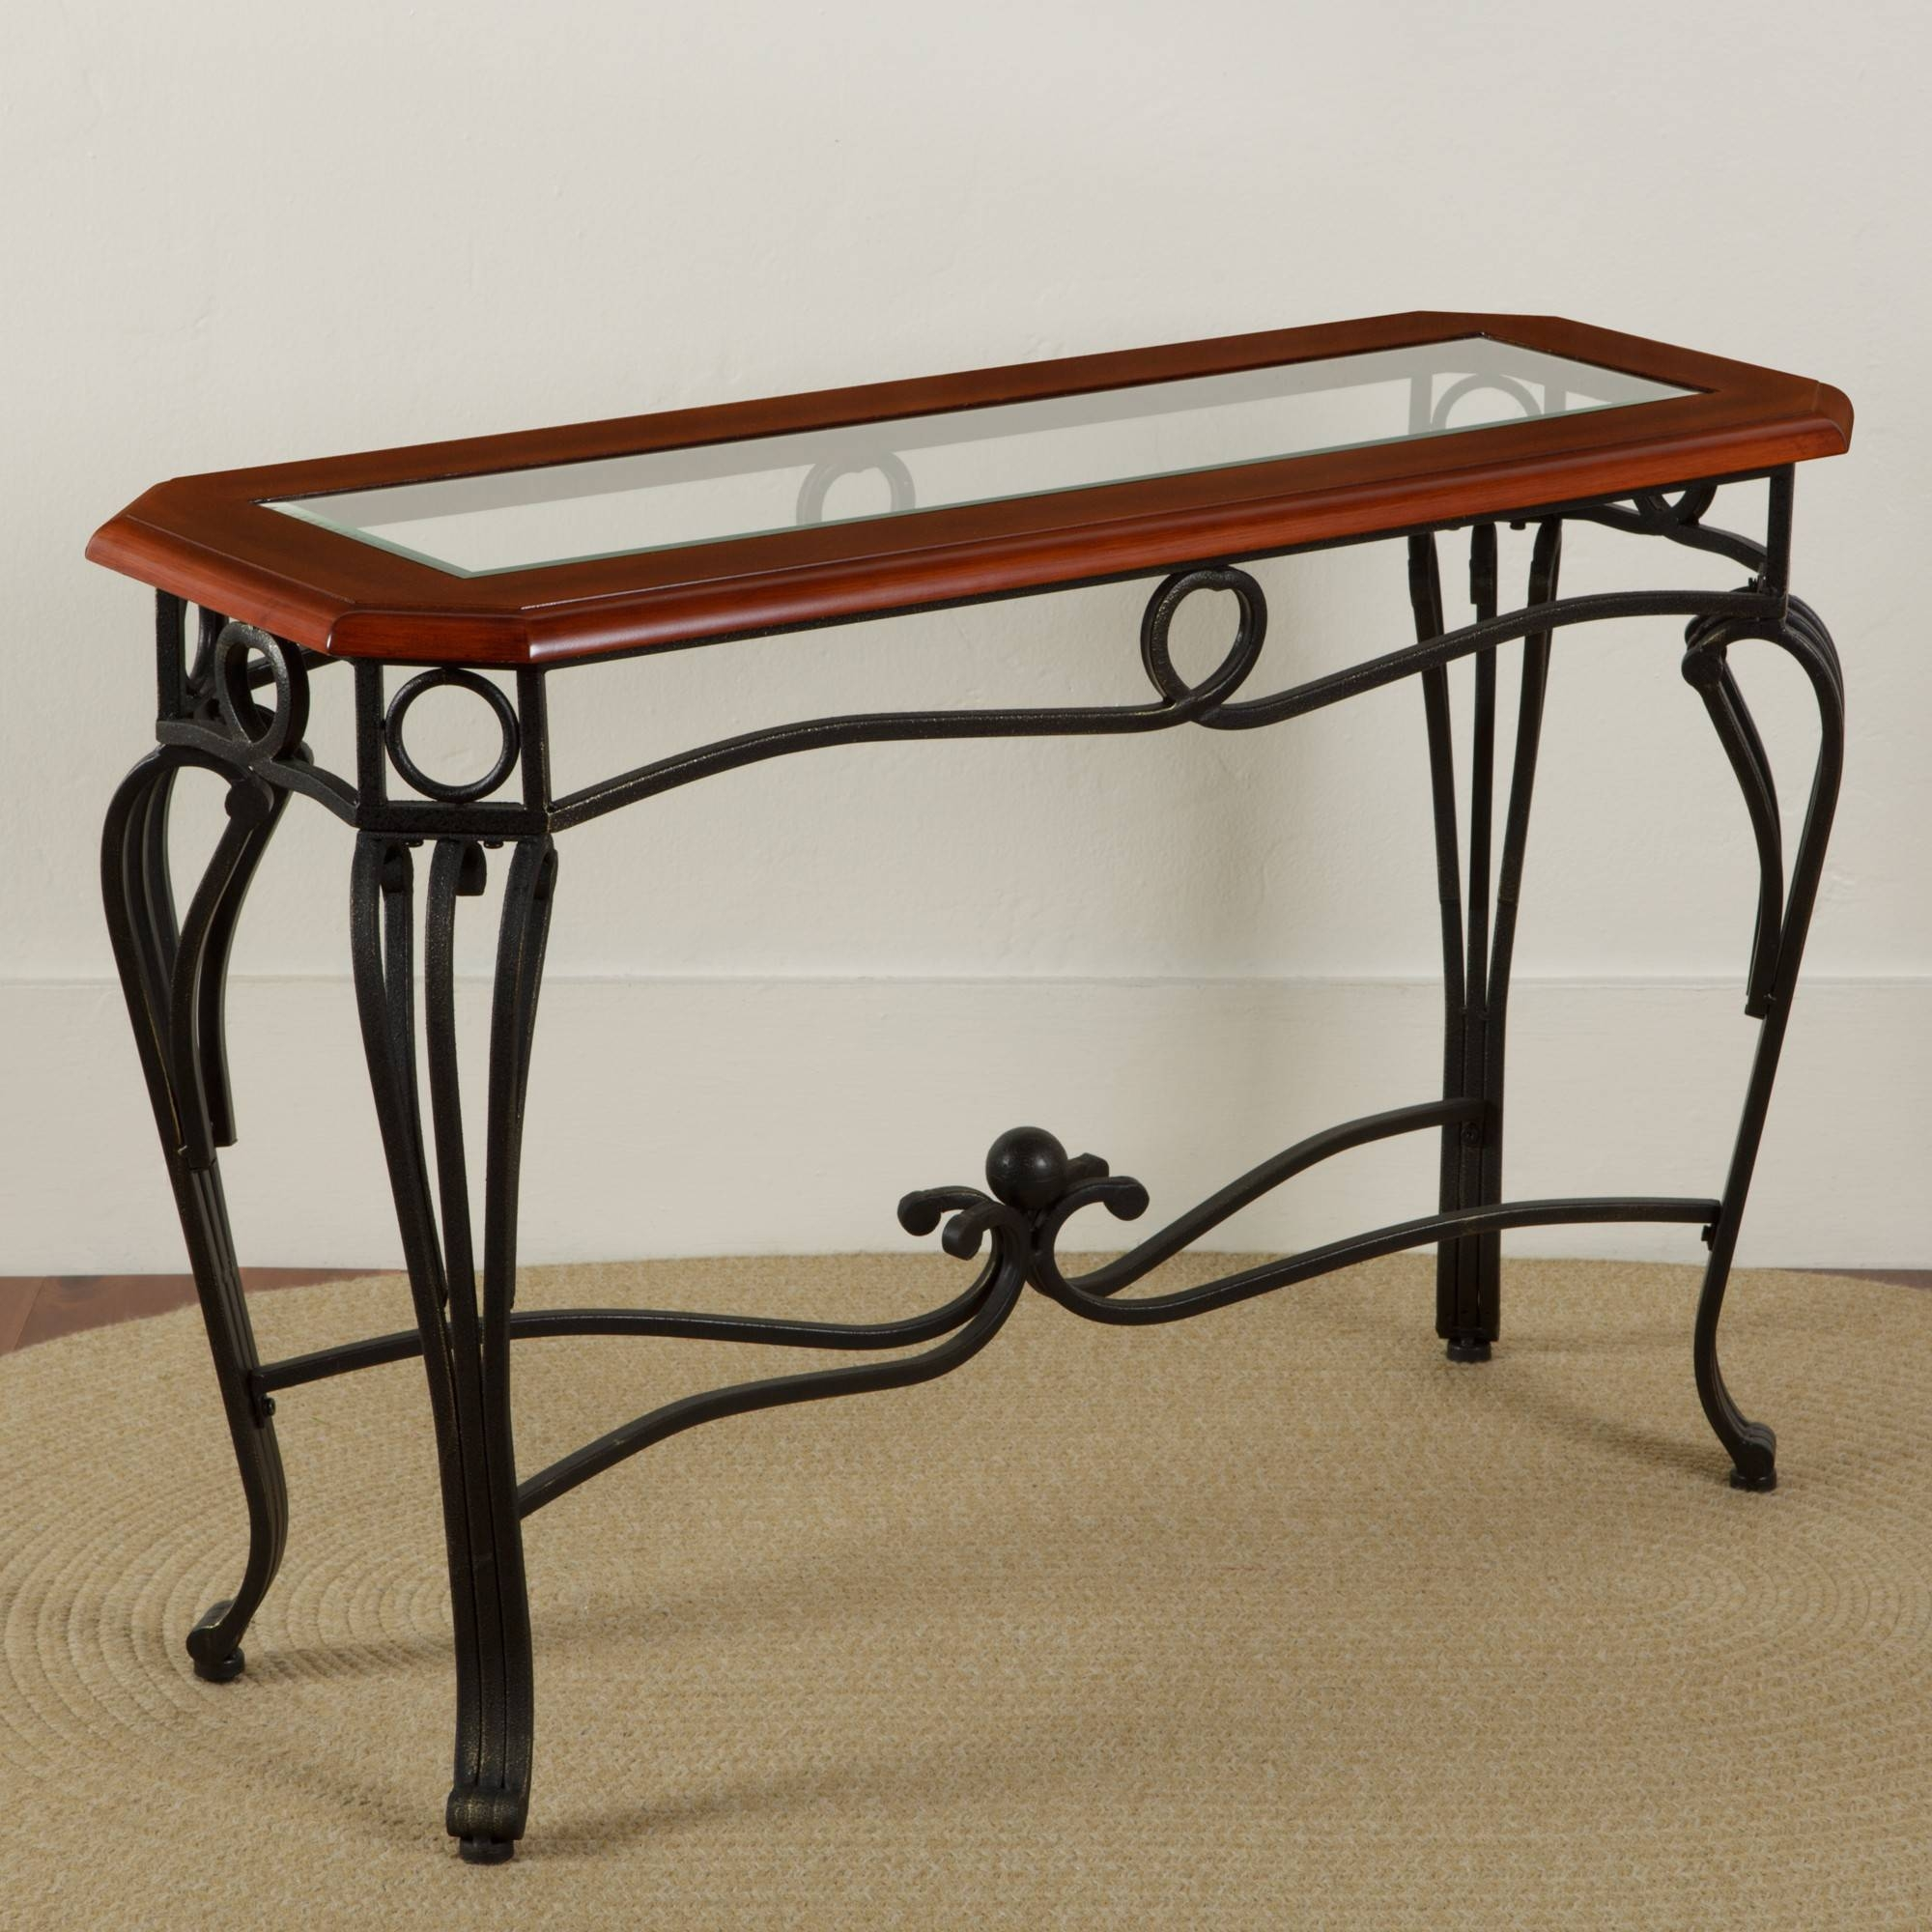 Scrolled Iron Glass Sofa Table | Sturbridge Yankee Workshop for Metal Glass Sofa Tables (Image 25 of 30)